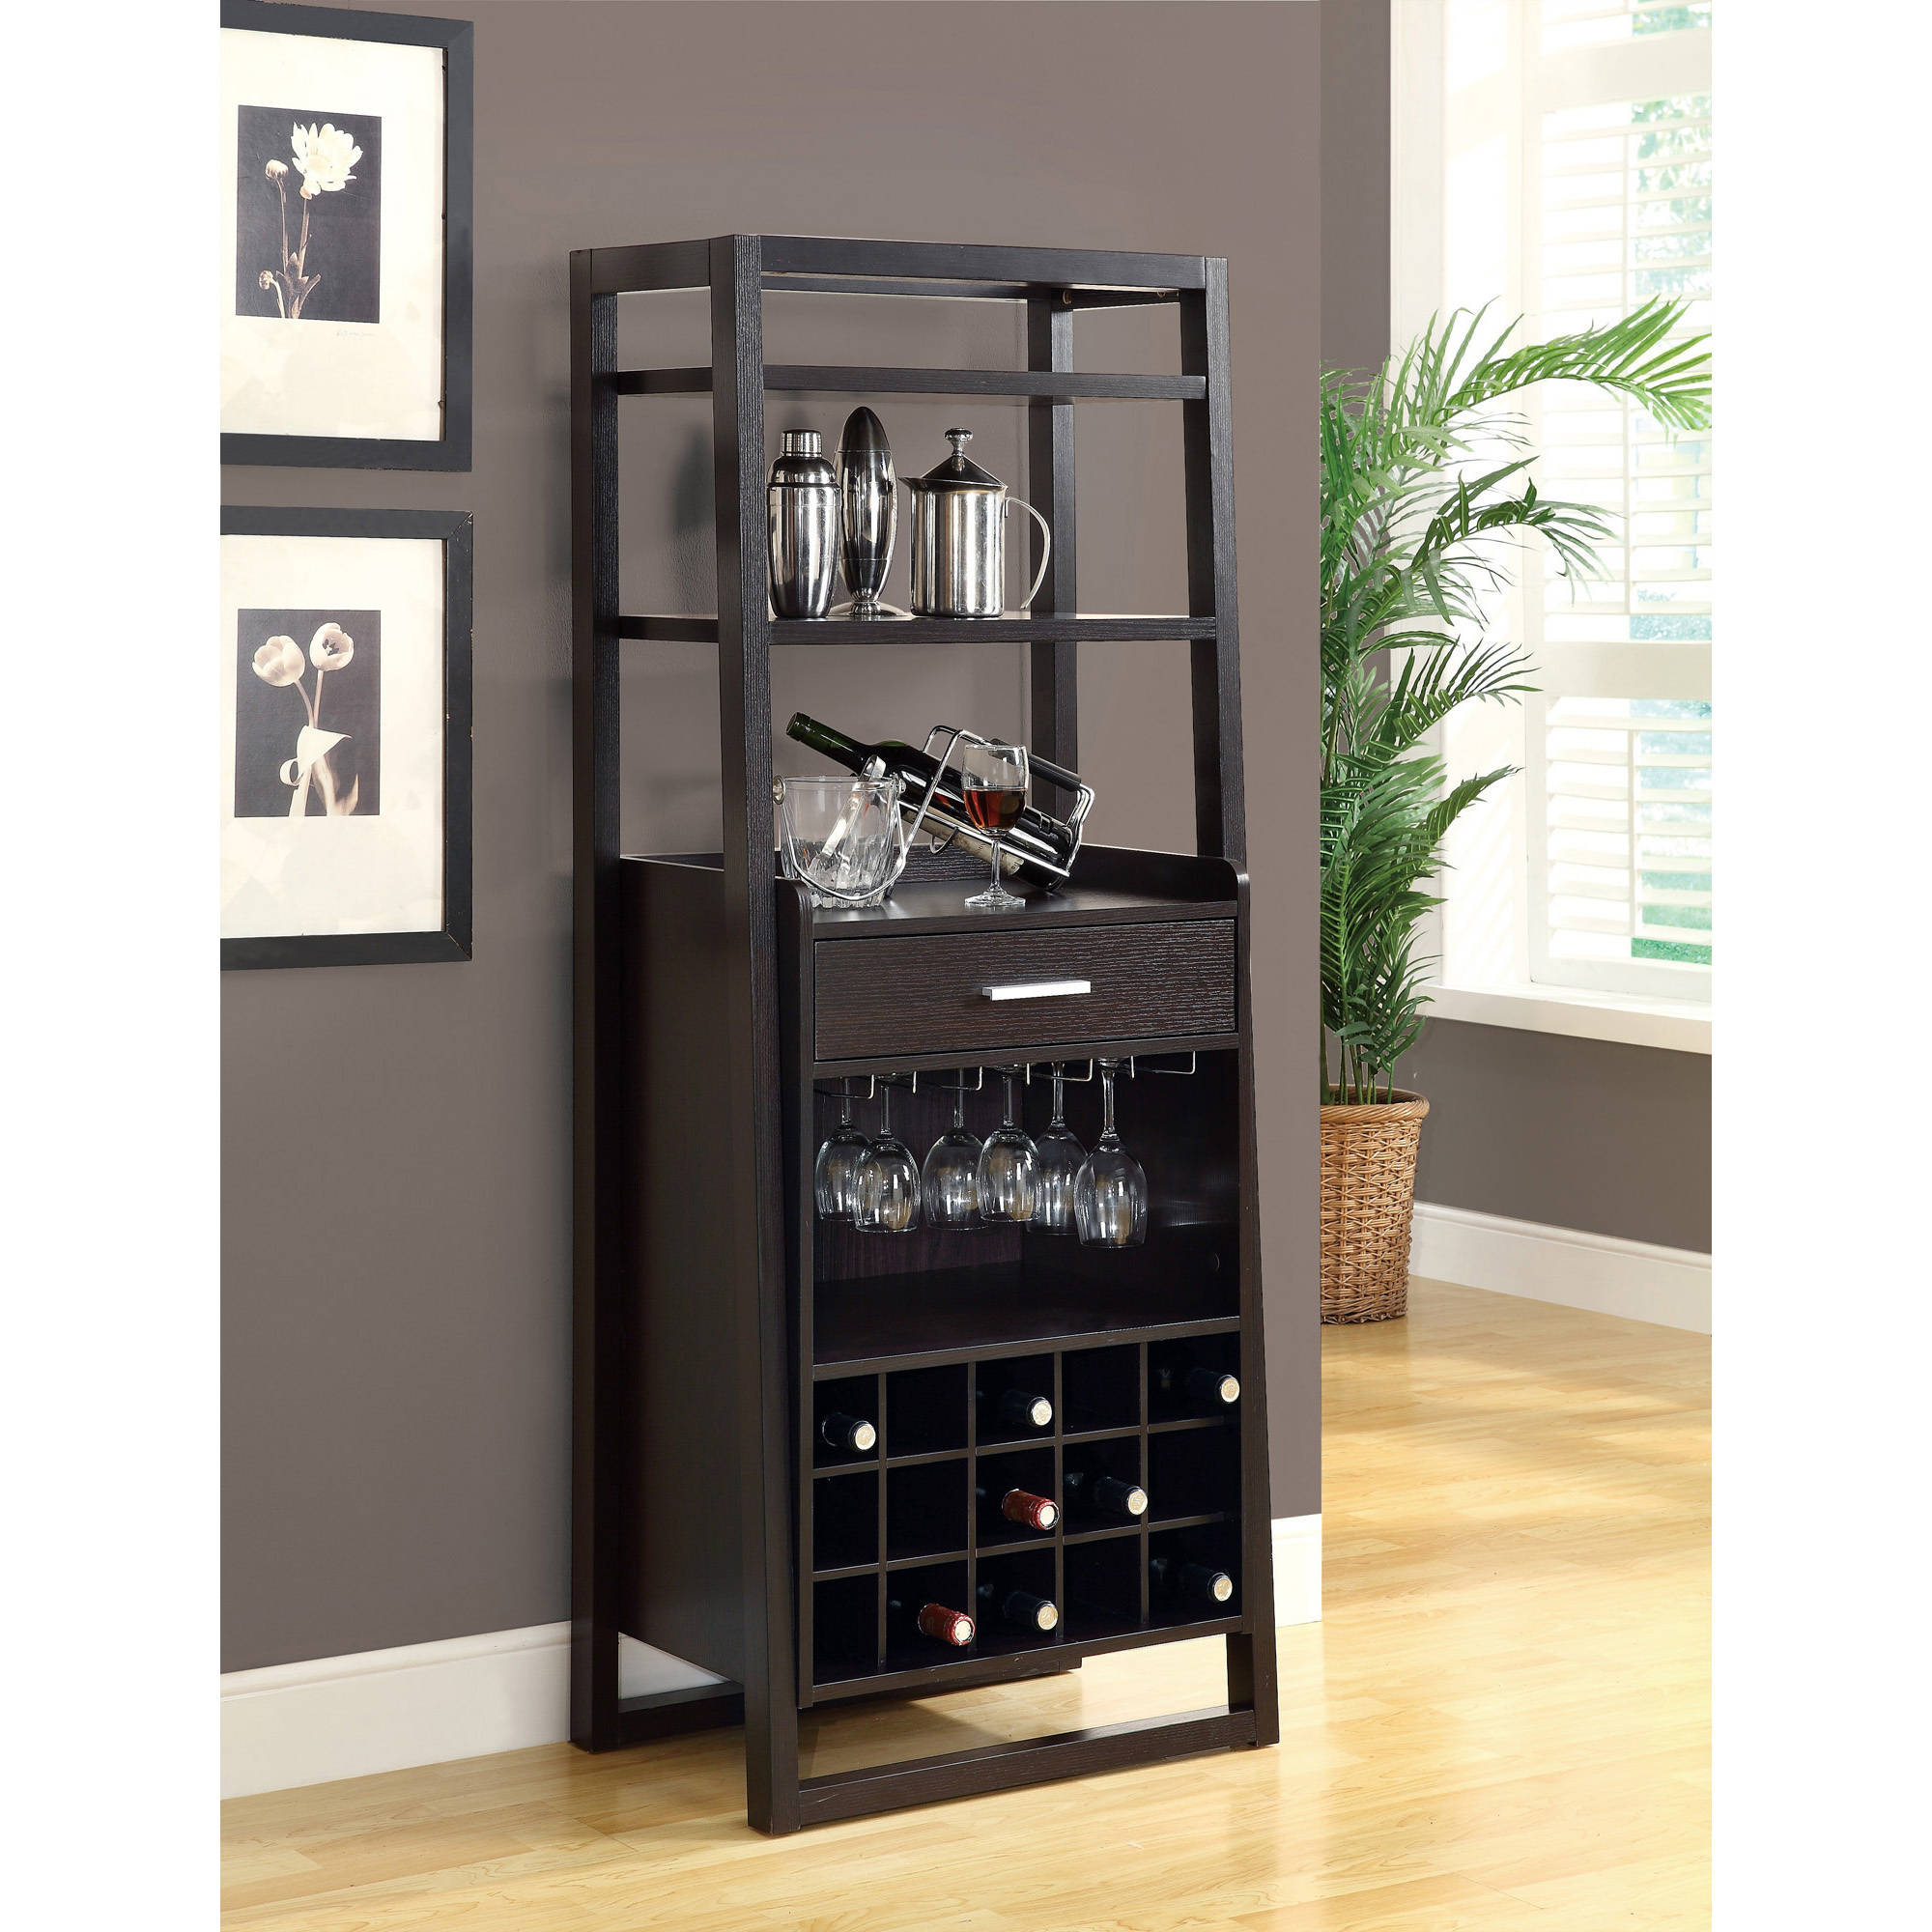 multi zq plus er racks ideas liquor zigzag shaped calm wine for cabinet large size howard cabinets miller bar cabinetbar lwqupn furniture double full reputable